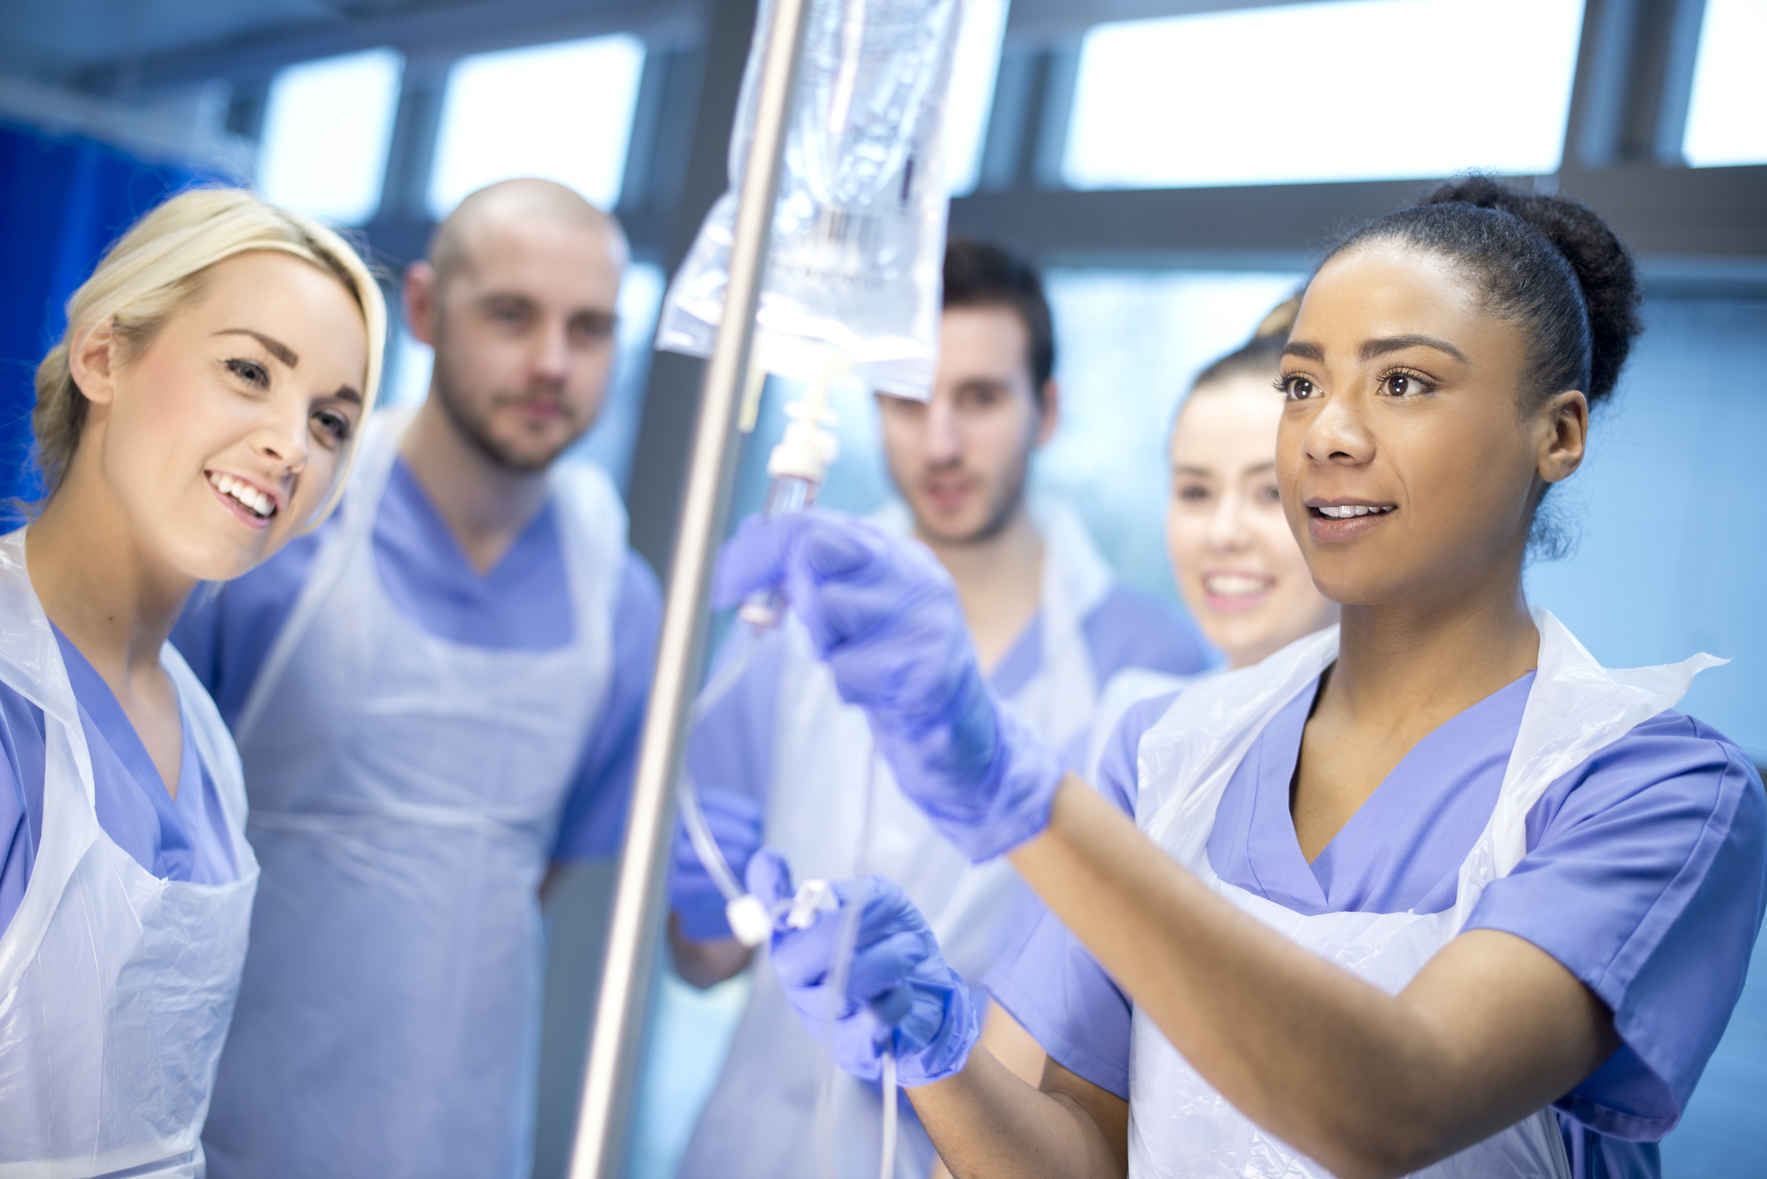 We need your help - We are your future nurses! image